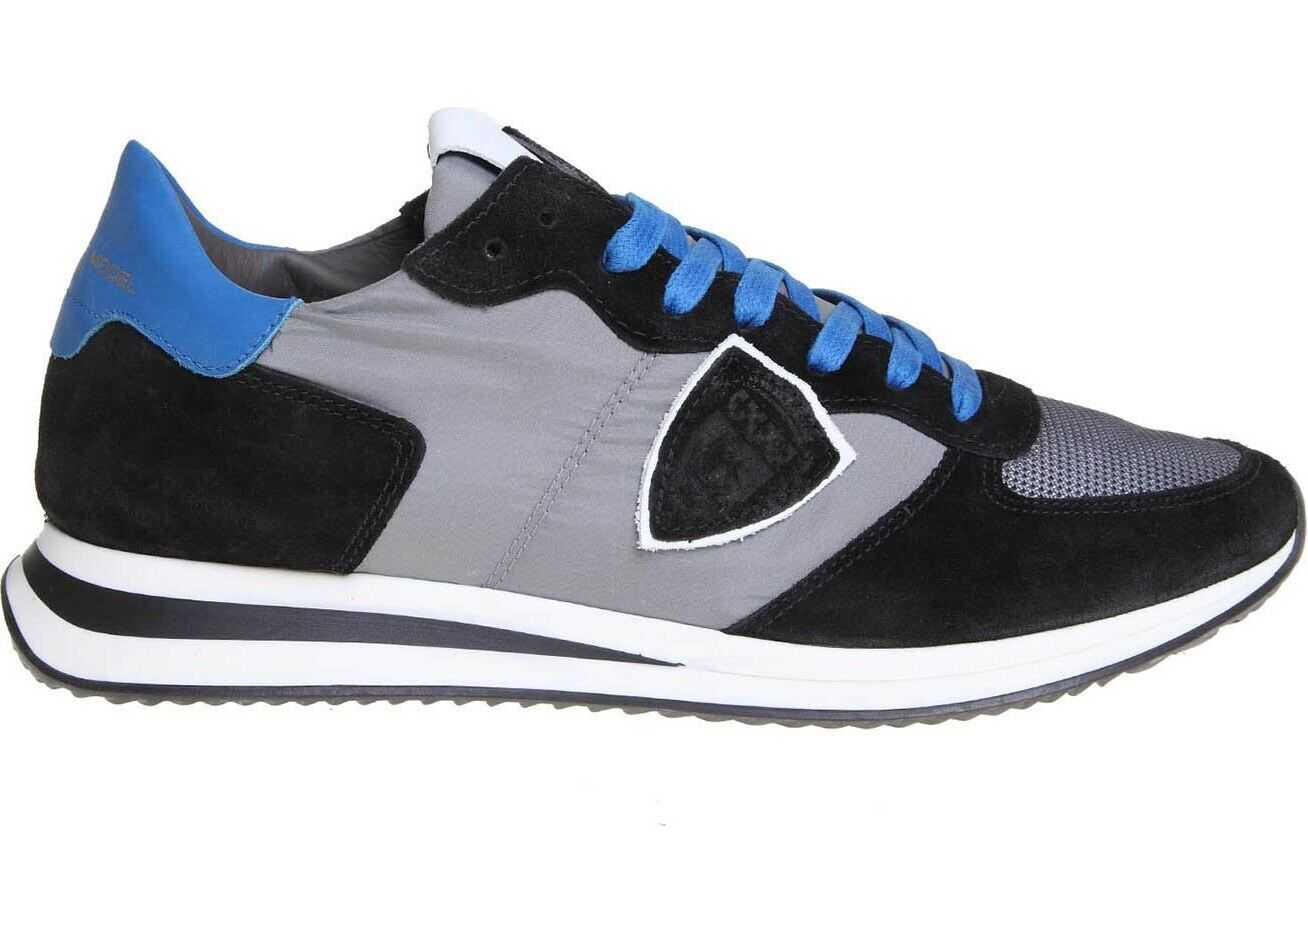 Philippe Model Trpx Sneakers In Black And Gray Black